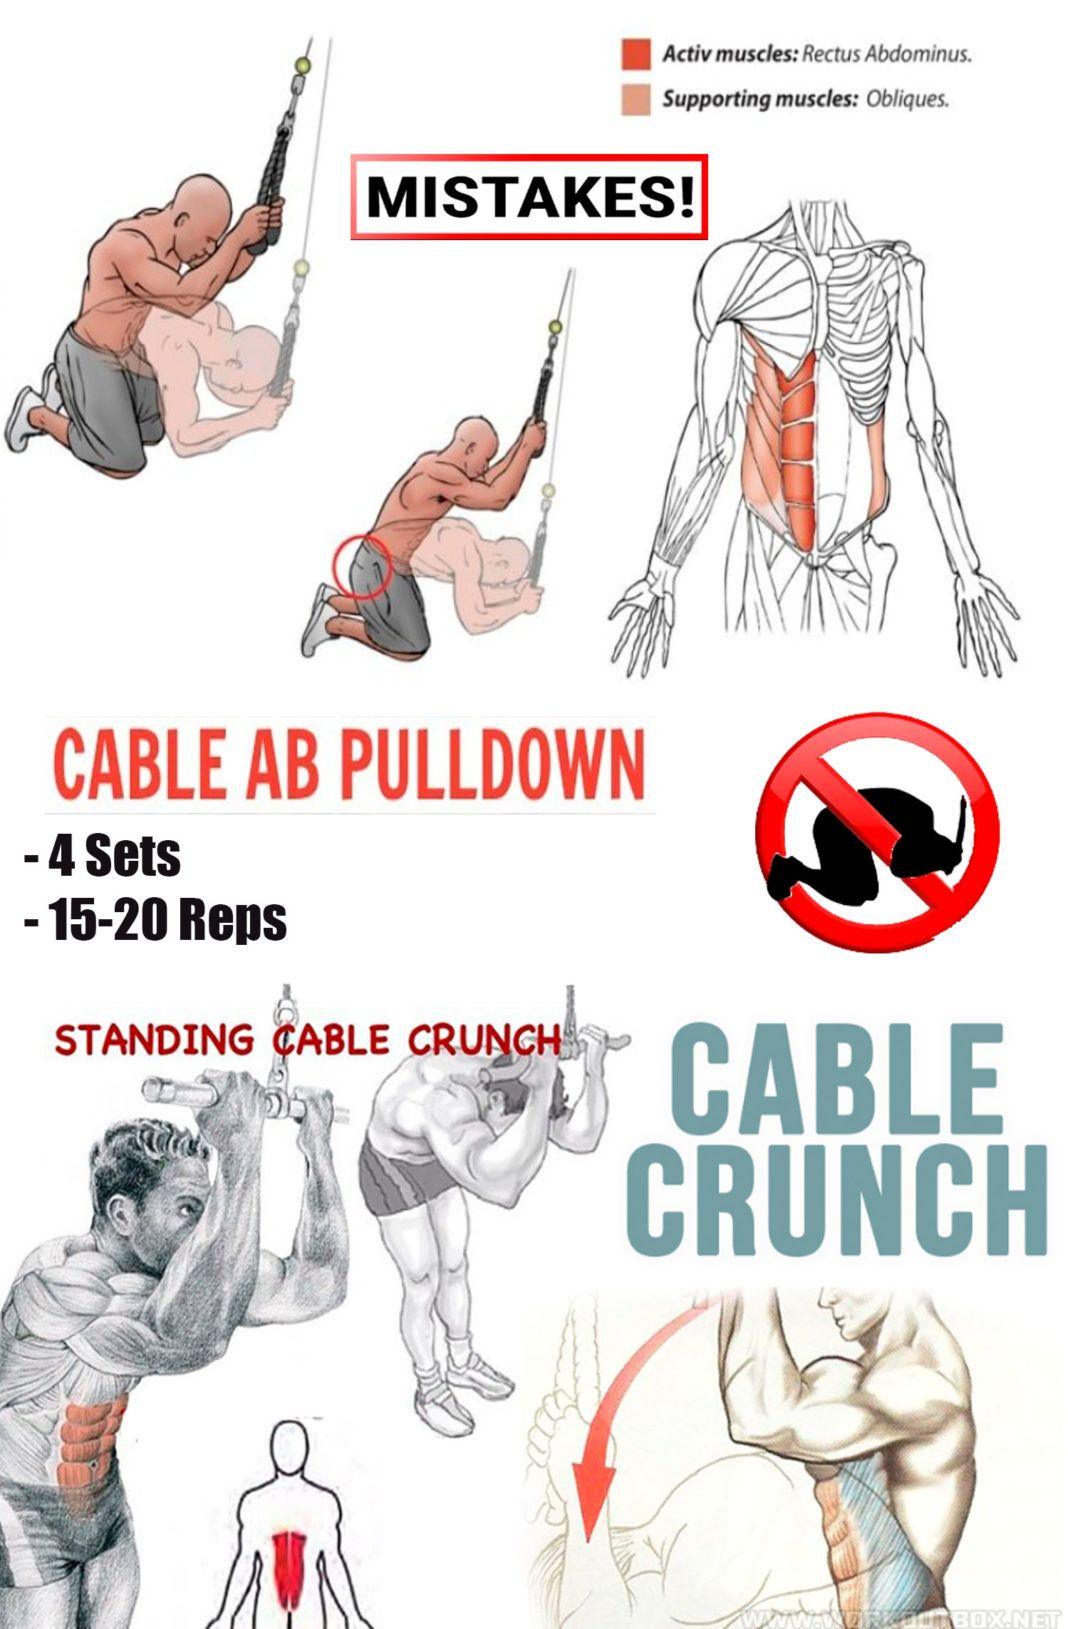 Cable Crunches Abs Workout Cable Crunch Six Pack Abs Workout